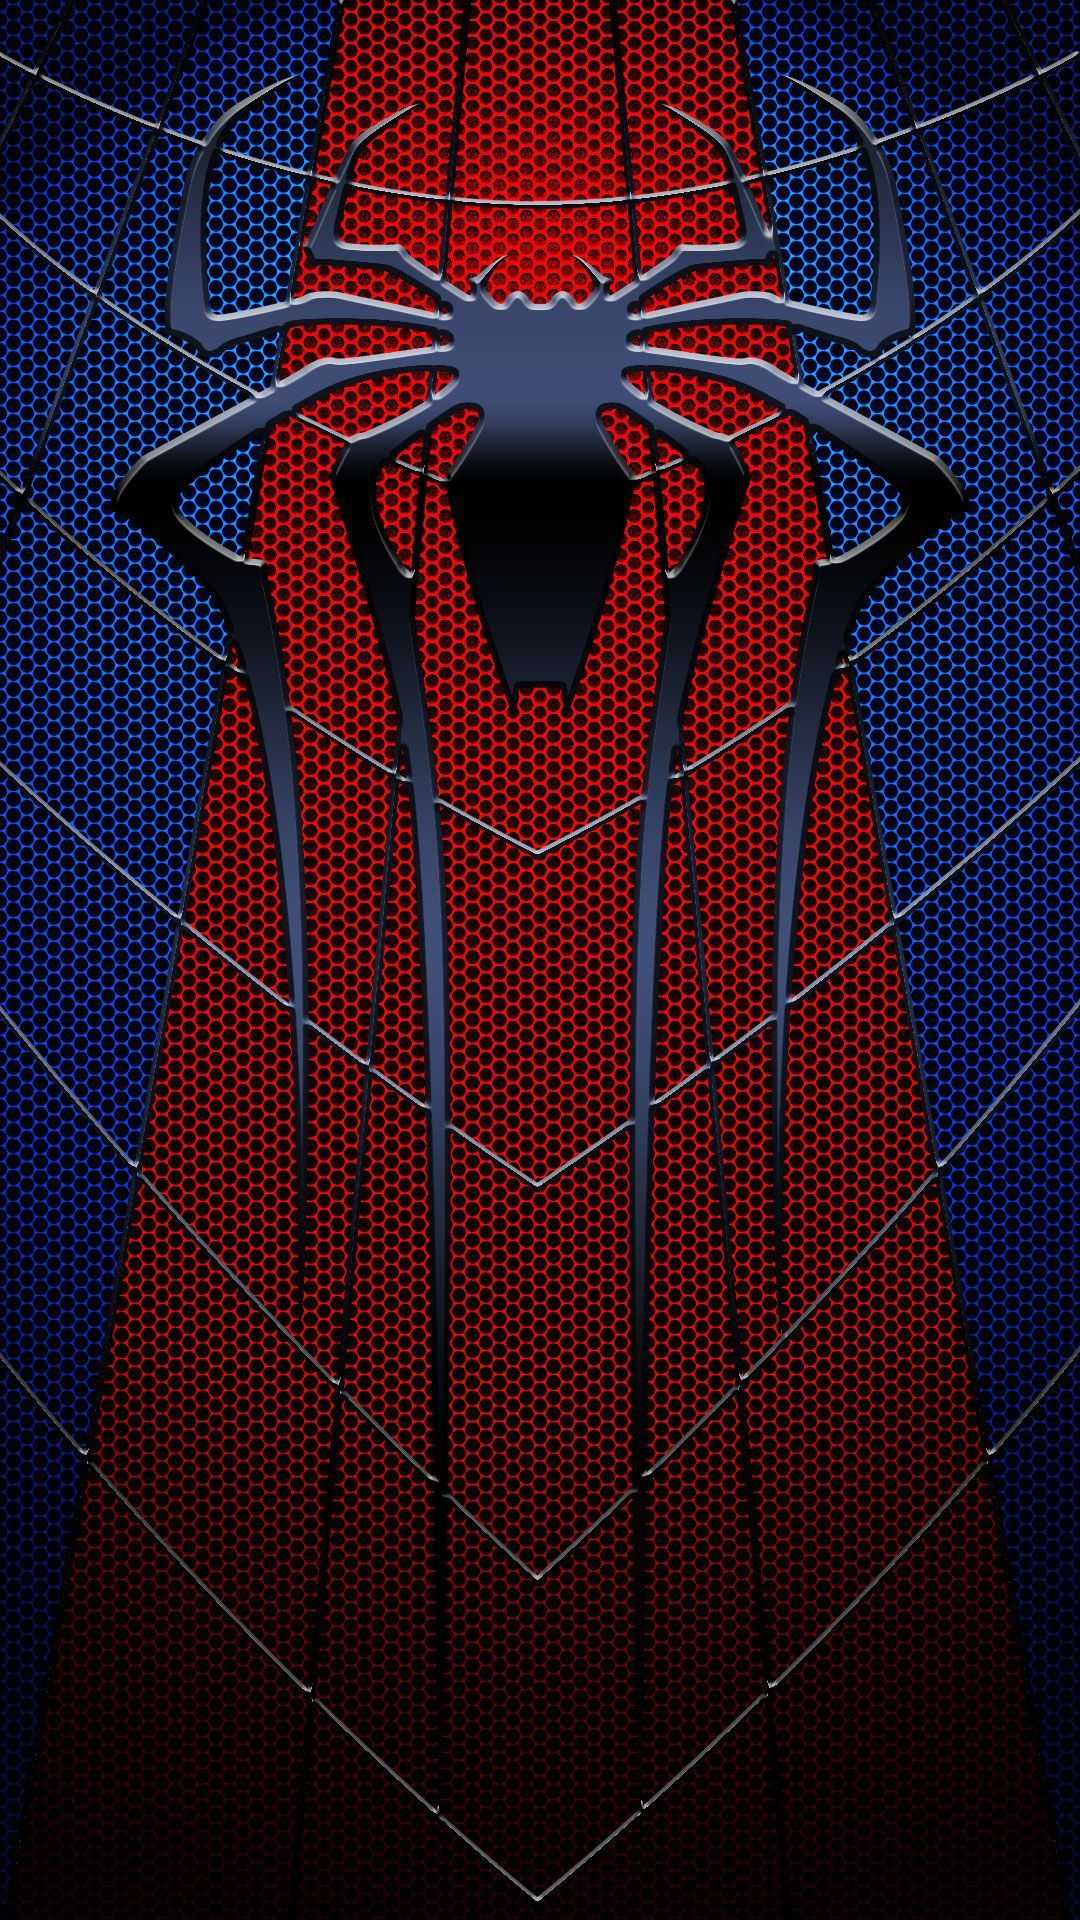 55 Entries In Spiderman Phone Wallpaper Group   Data-src - Spiderman Wallpaper Phone 4k - HD Wallpaper